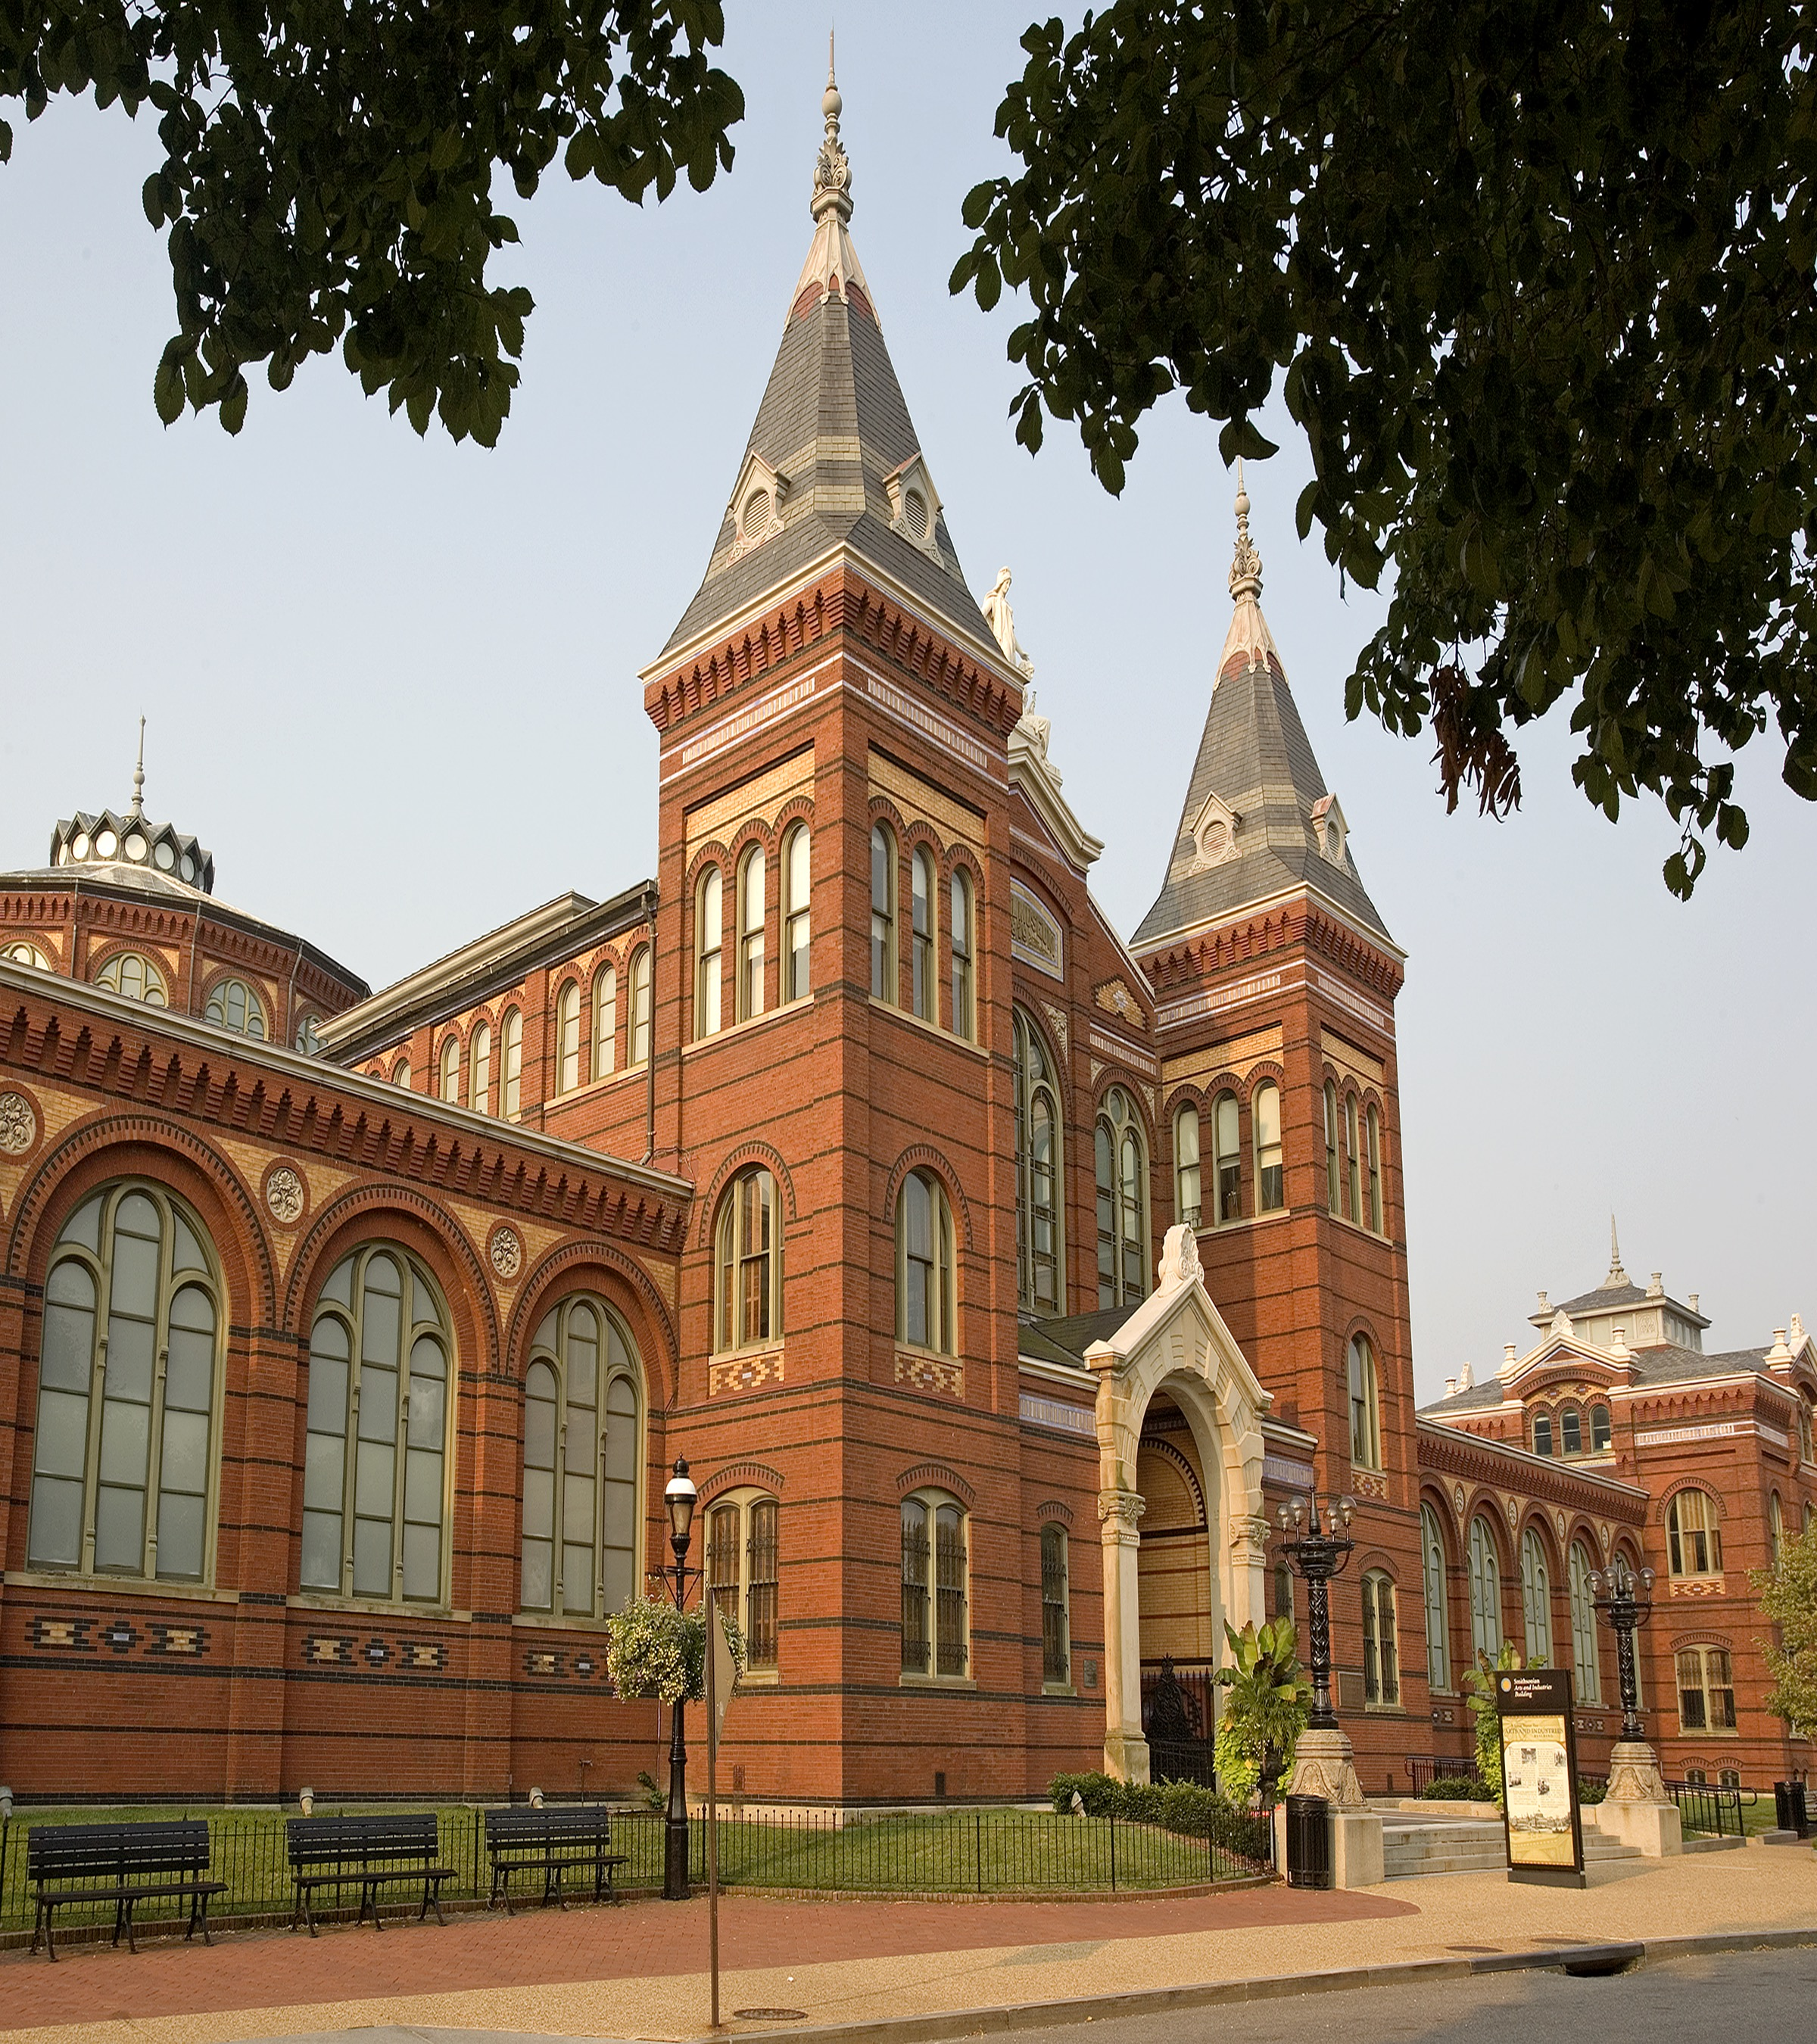 Front view of the Arts and Industries Building